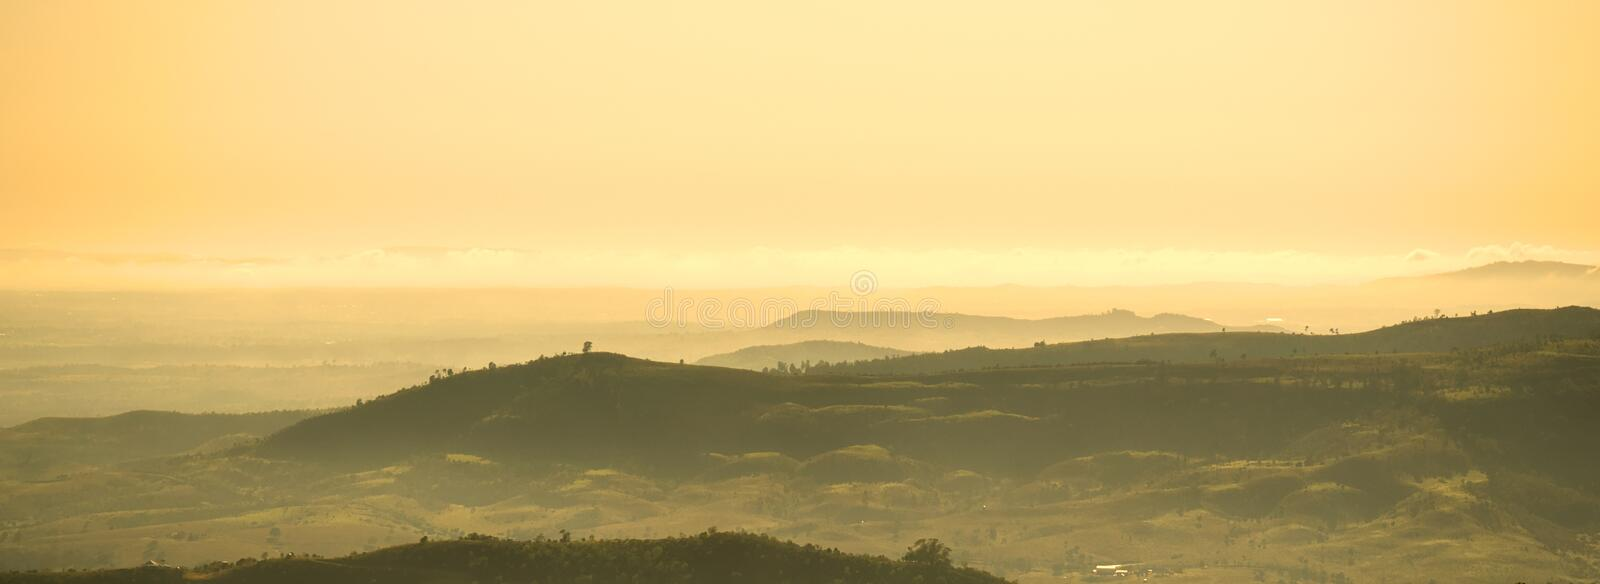 Scenic View of Mountains Against Dramatic Sky royalty free stock photography